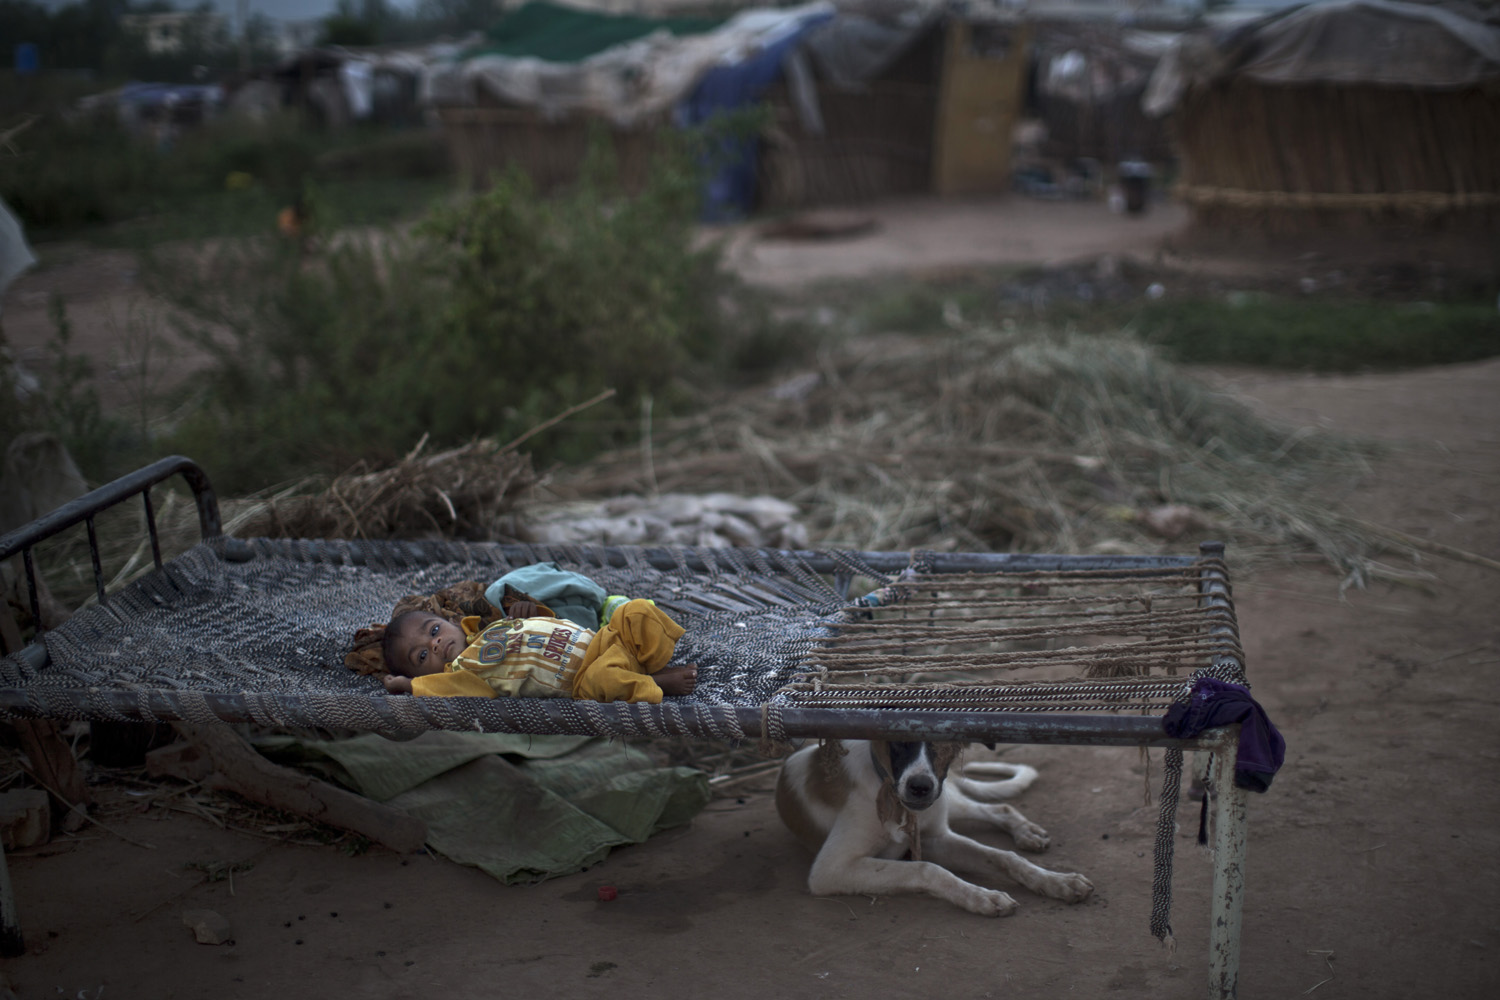 Sept. 25, 2013. A Pakistani child lies in a bed outside his family's makeshift home in a slum in Islamabad, Pakistan.